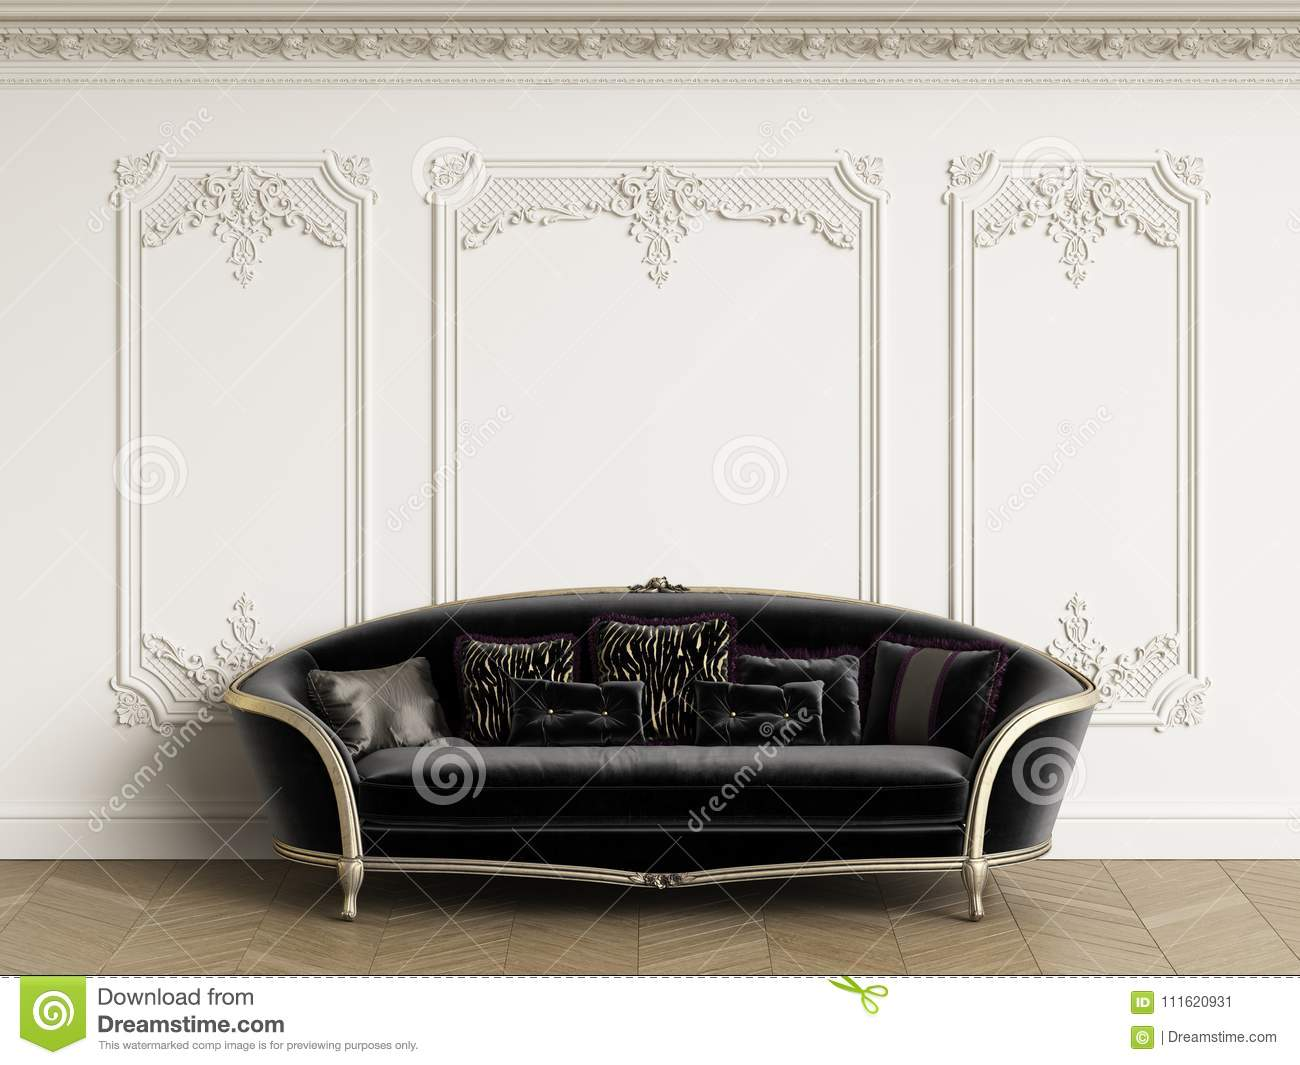 Classic Sofa In Gold And Black Colors In Classic Interior